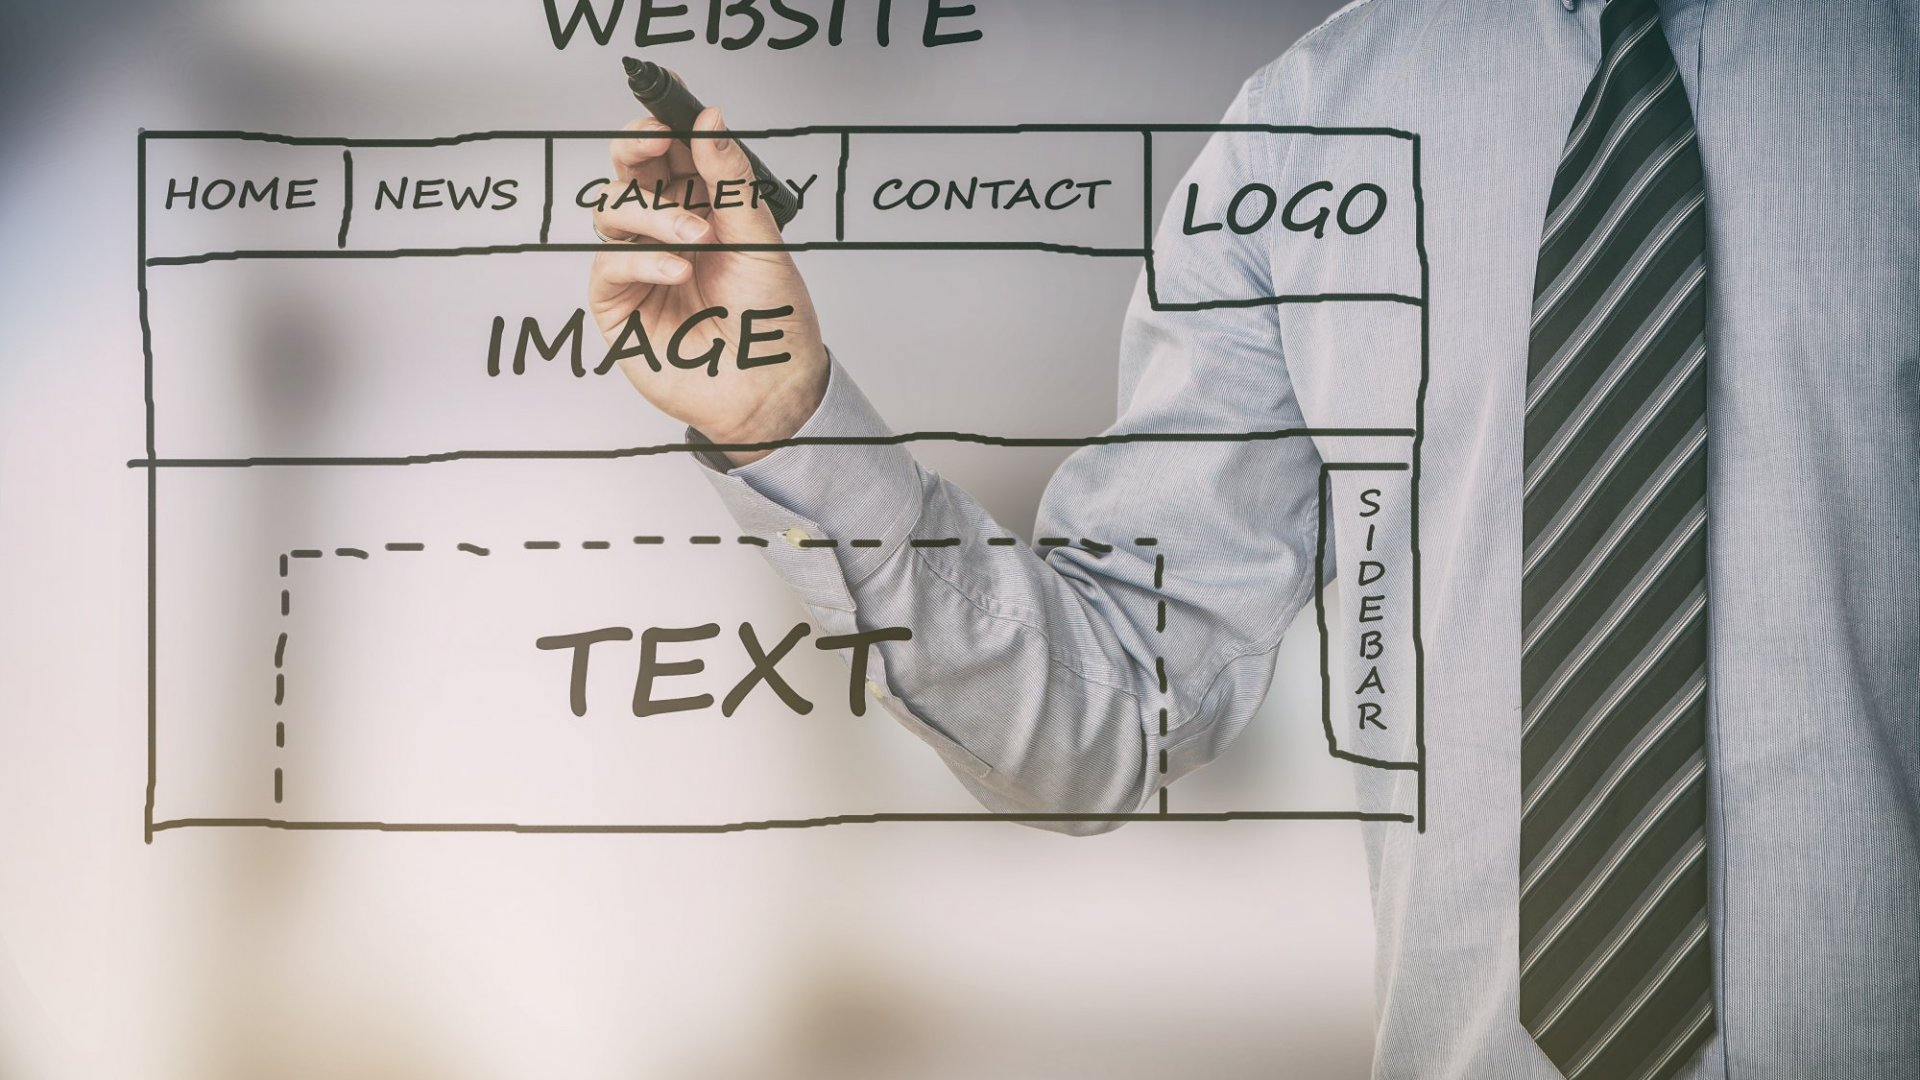 One of the Most Overlooked Factors of Digital Marketing (and How to Fix it)